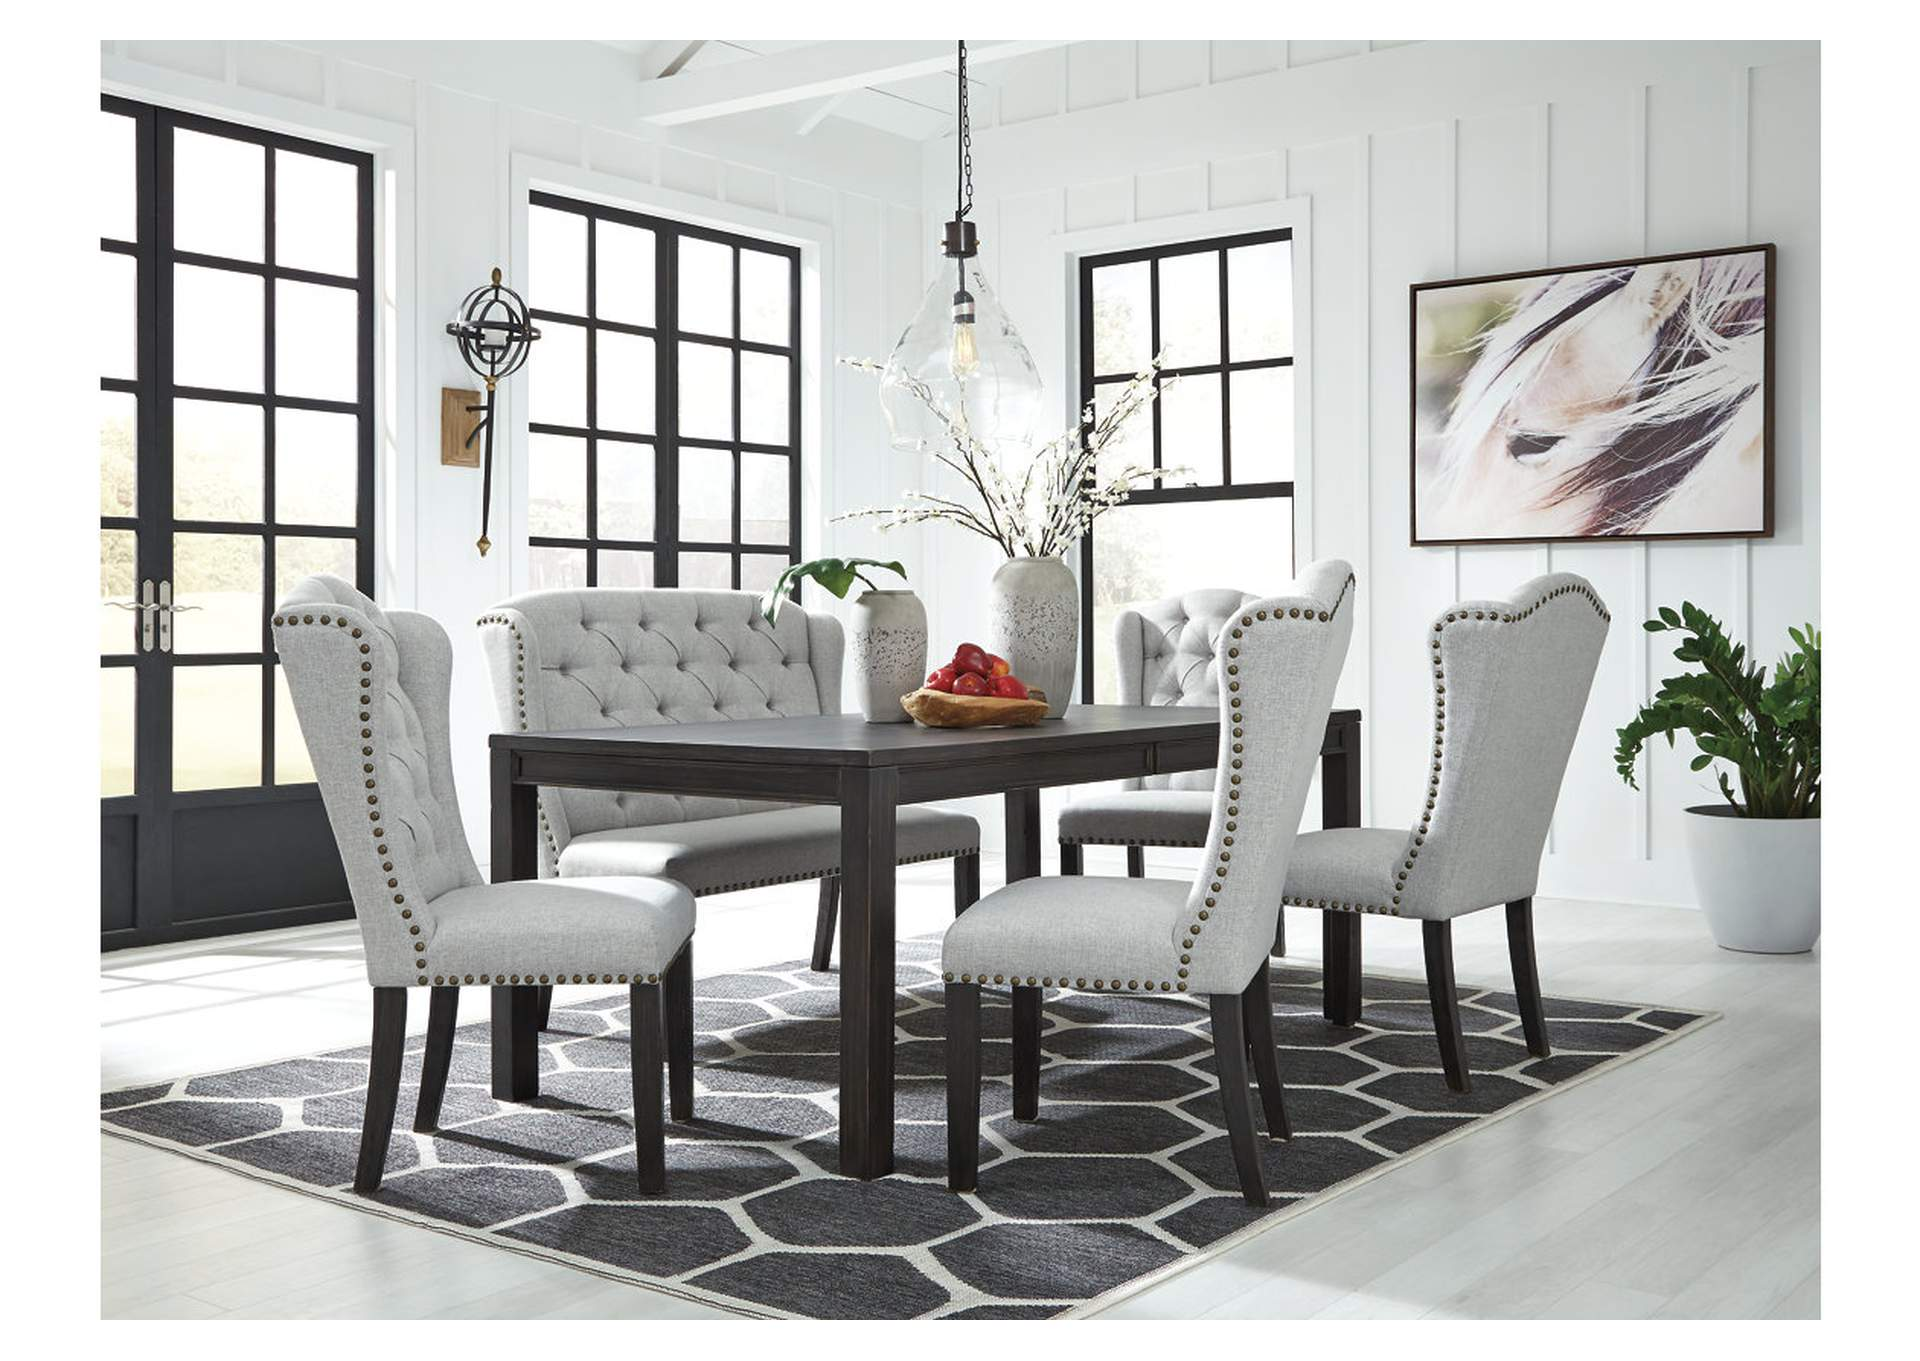 Jeanette 6 Piece Dining Room Set Ashley, 6 Piece Dining Room Set